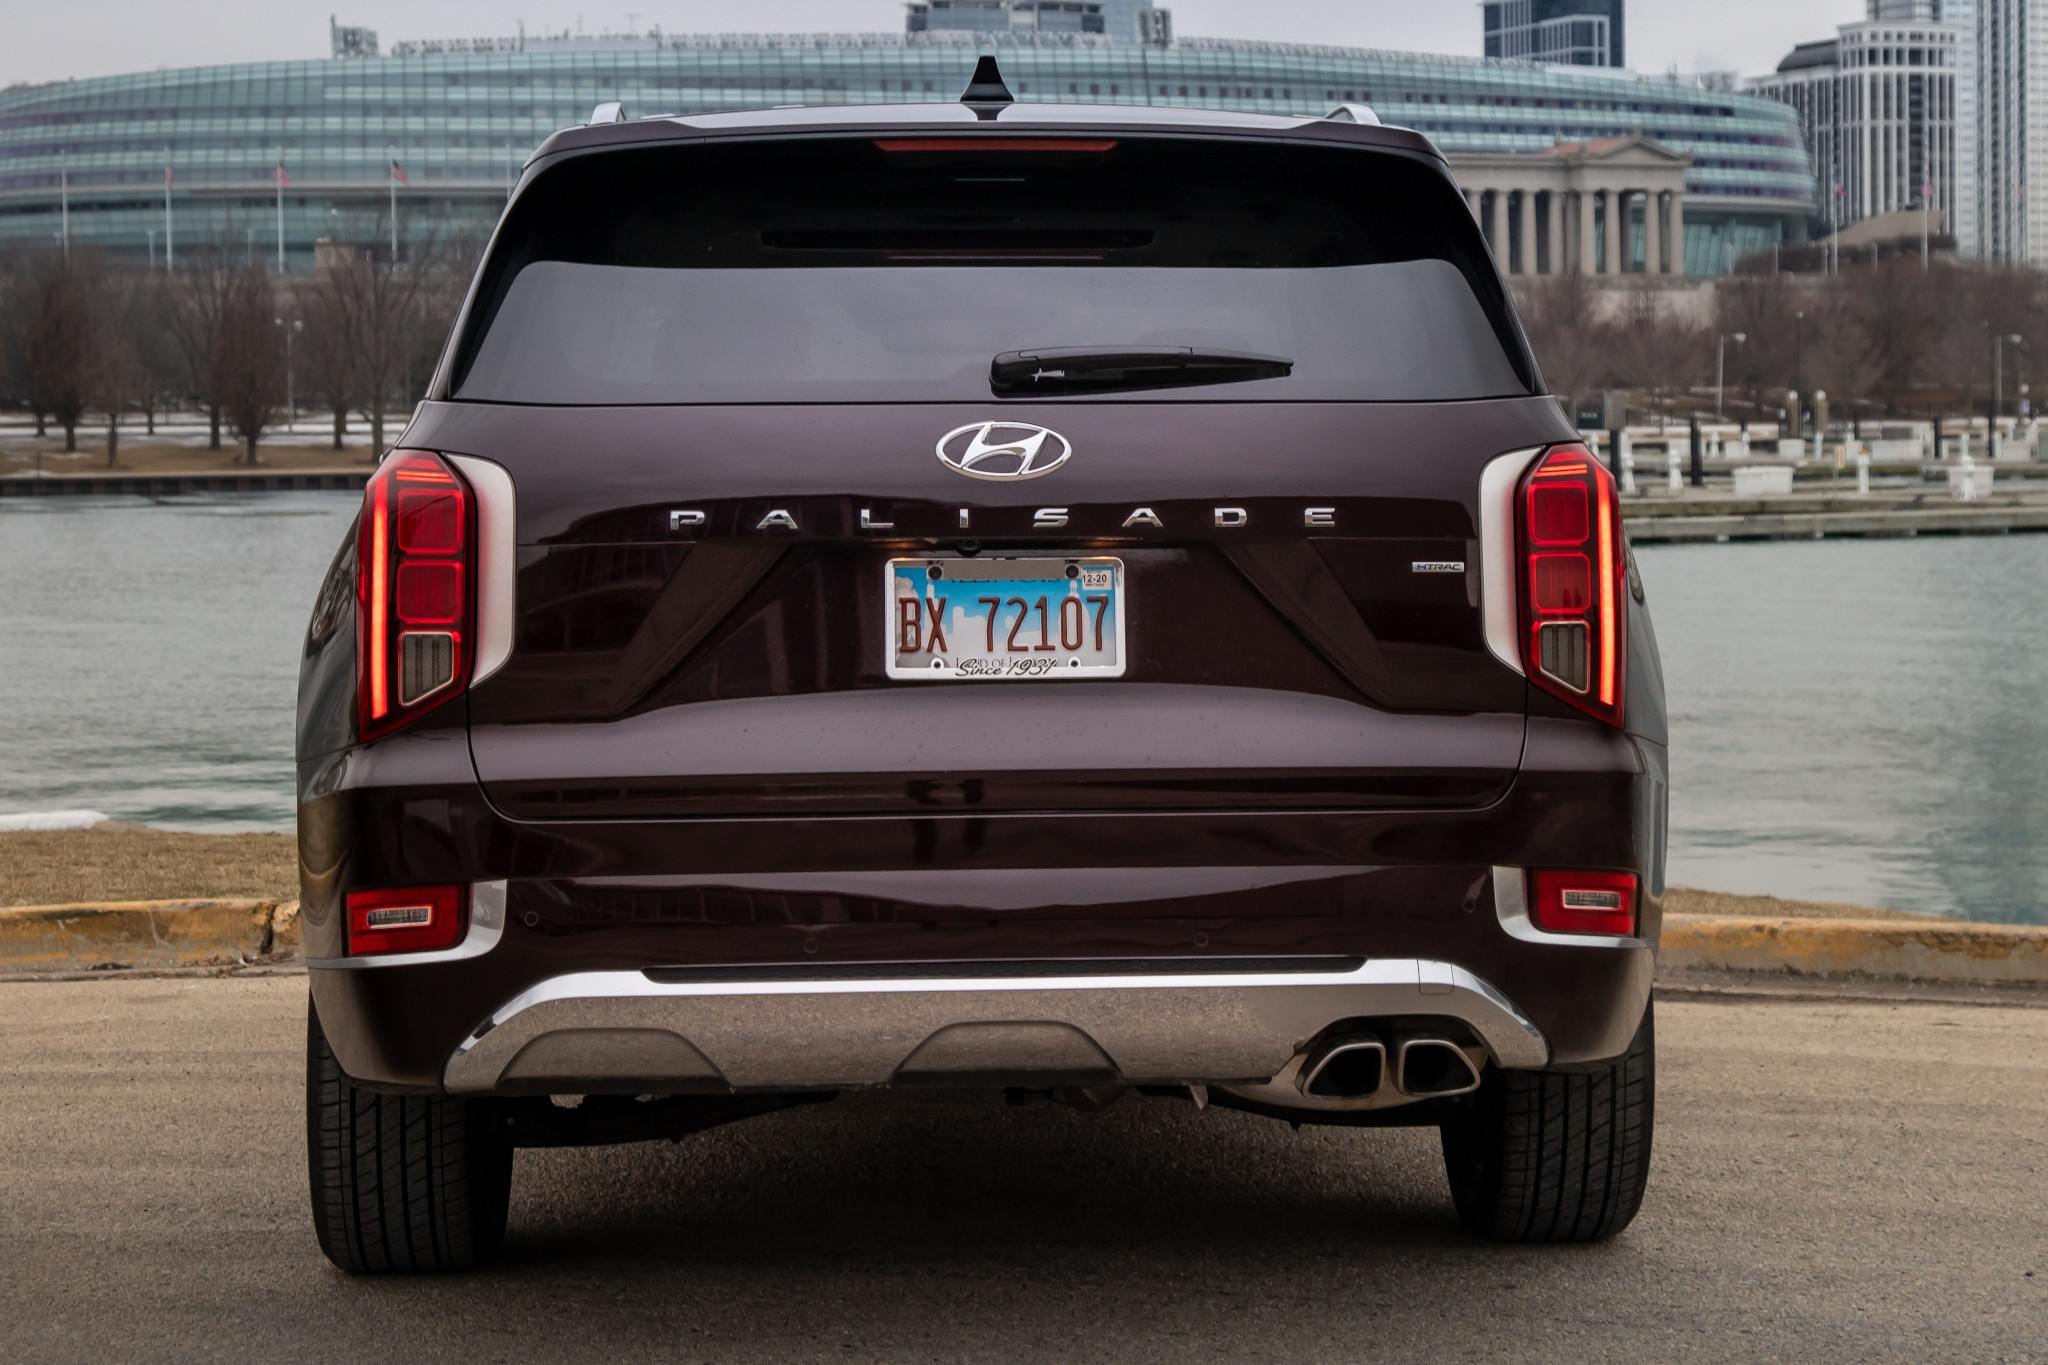 Cars.com's 2020 Hyundai Palisade: Here's What Our First Service Visit Cost